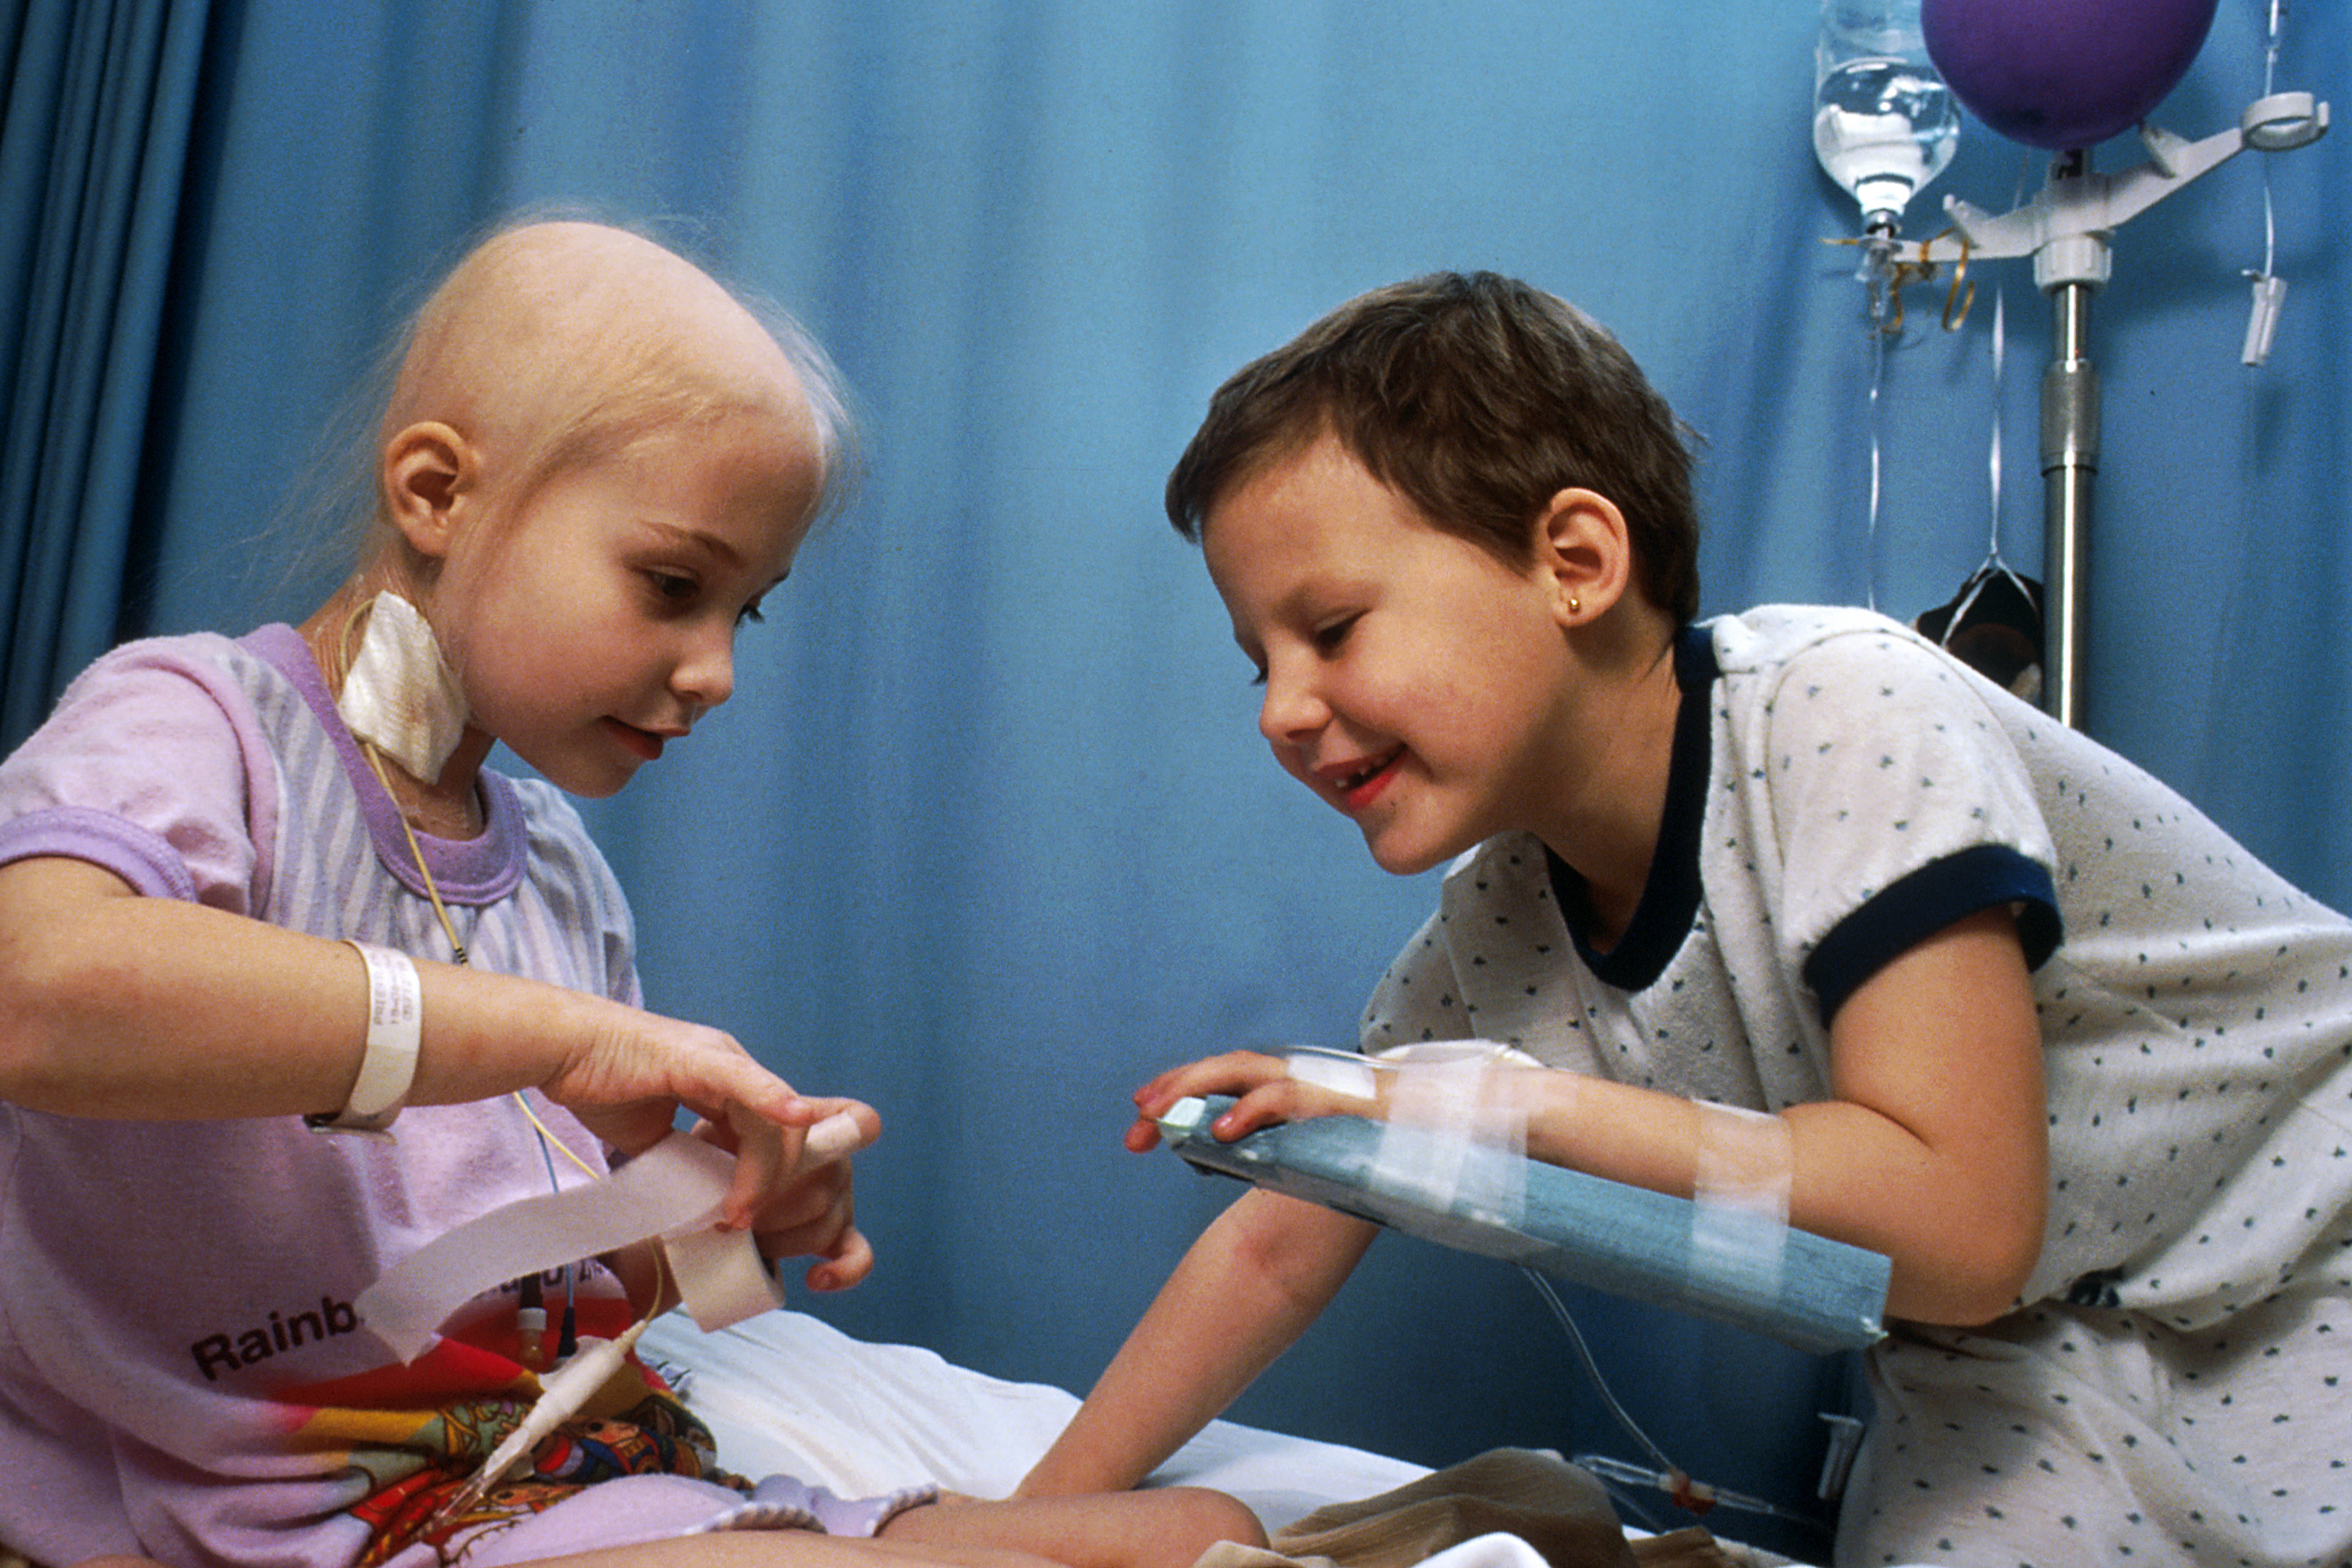 A little girl playing with a friend in a hospital bed as they await chemotherapy treatment.